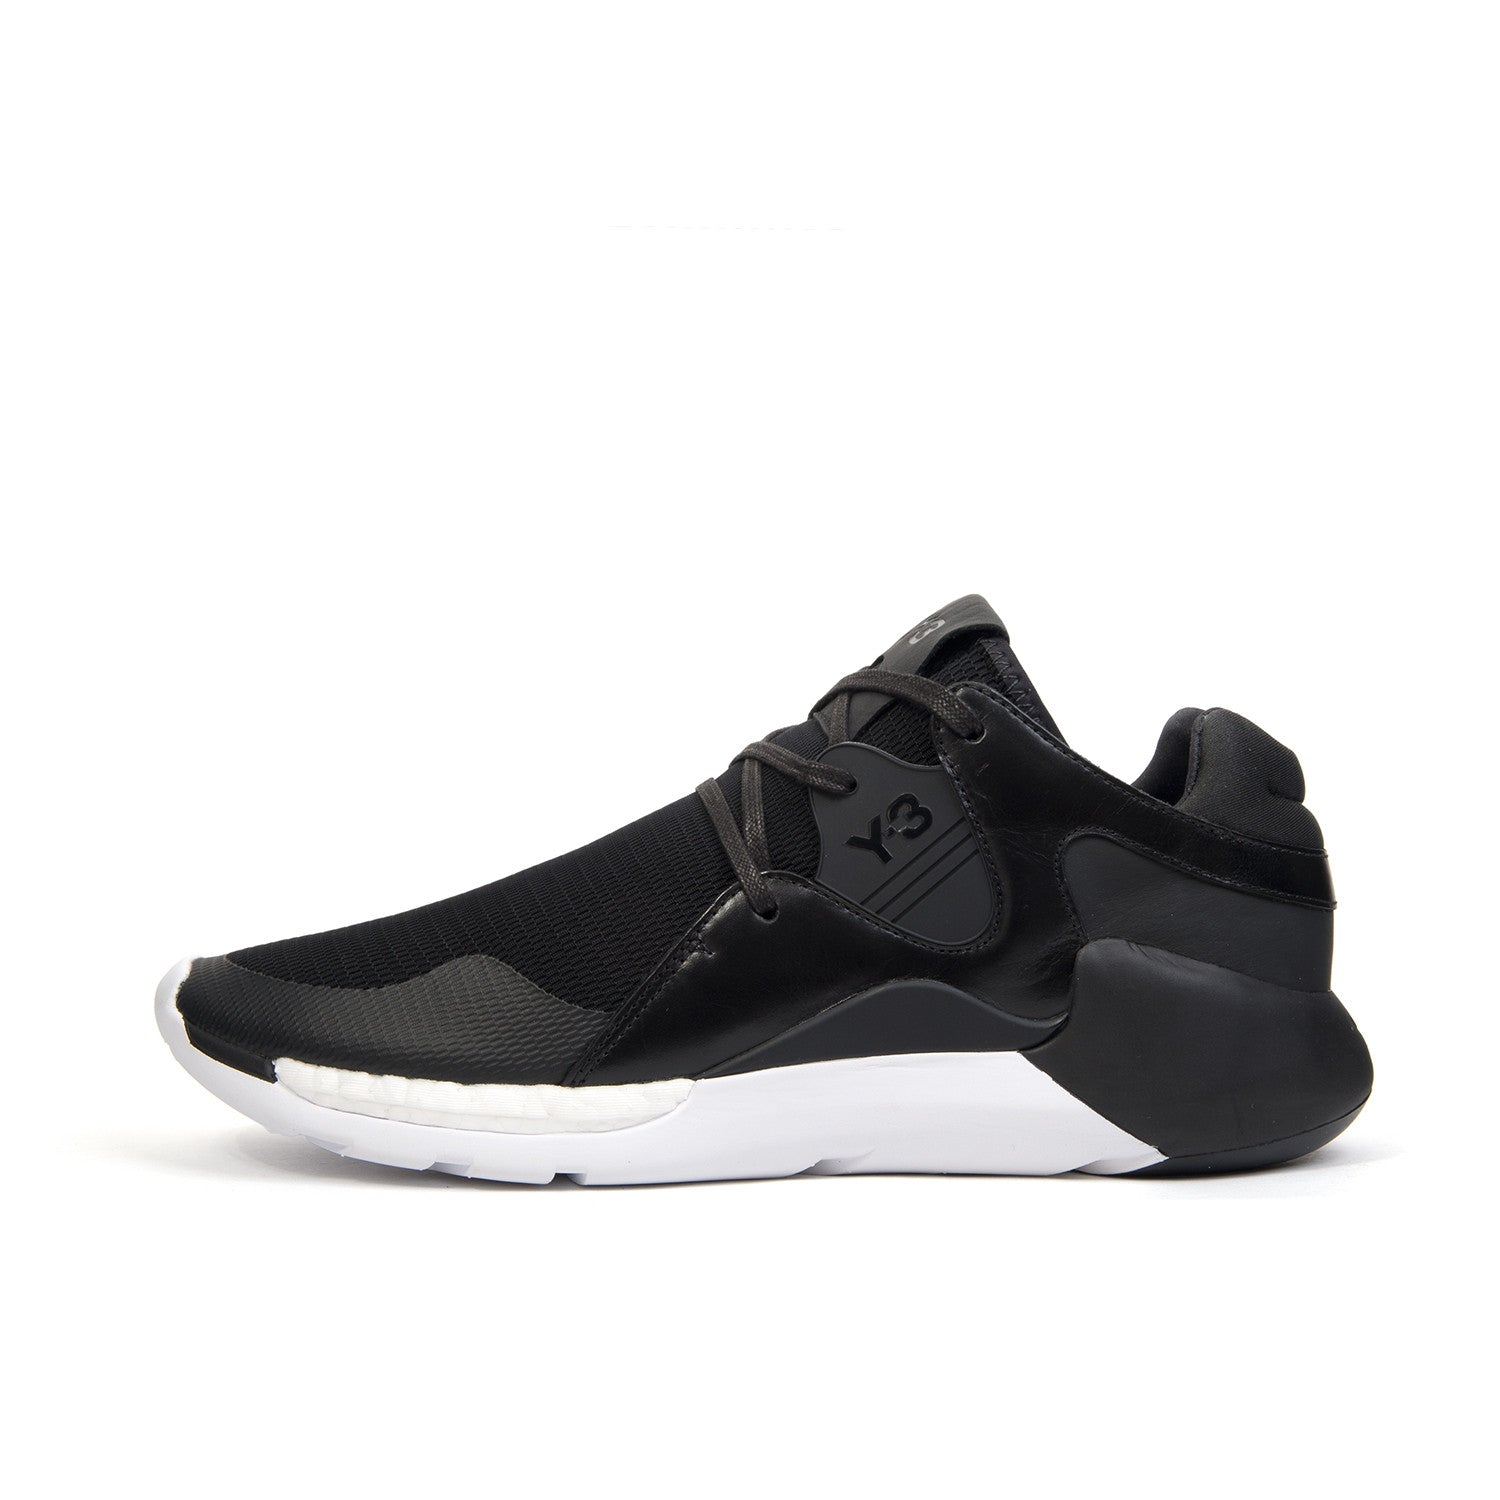 adidas Y-3 QR Run Black/Black/White - Concrete